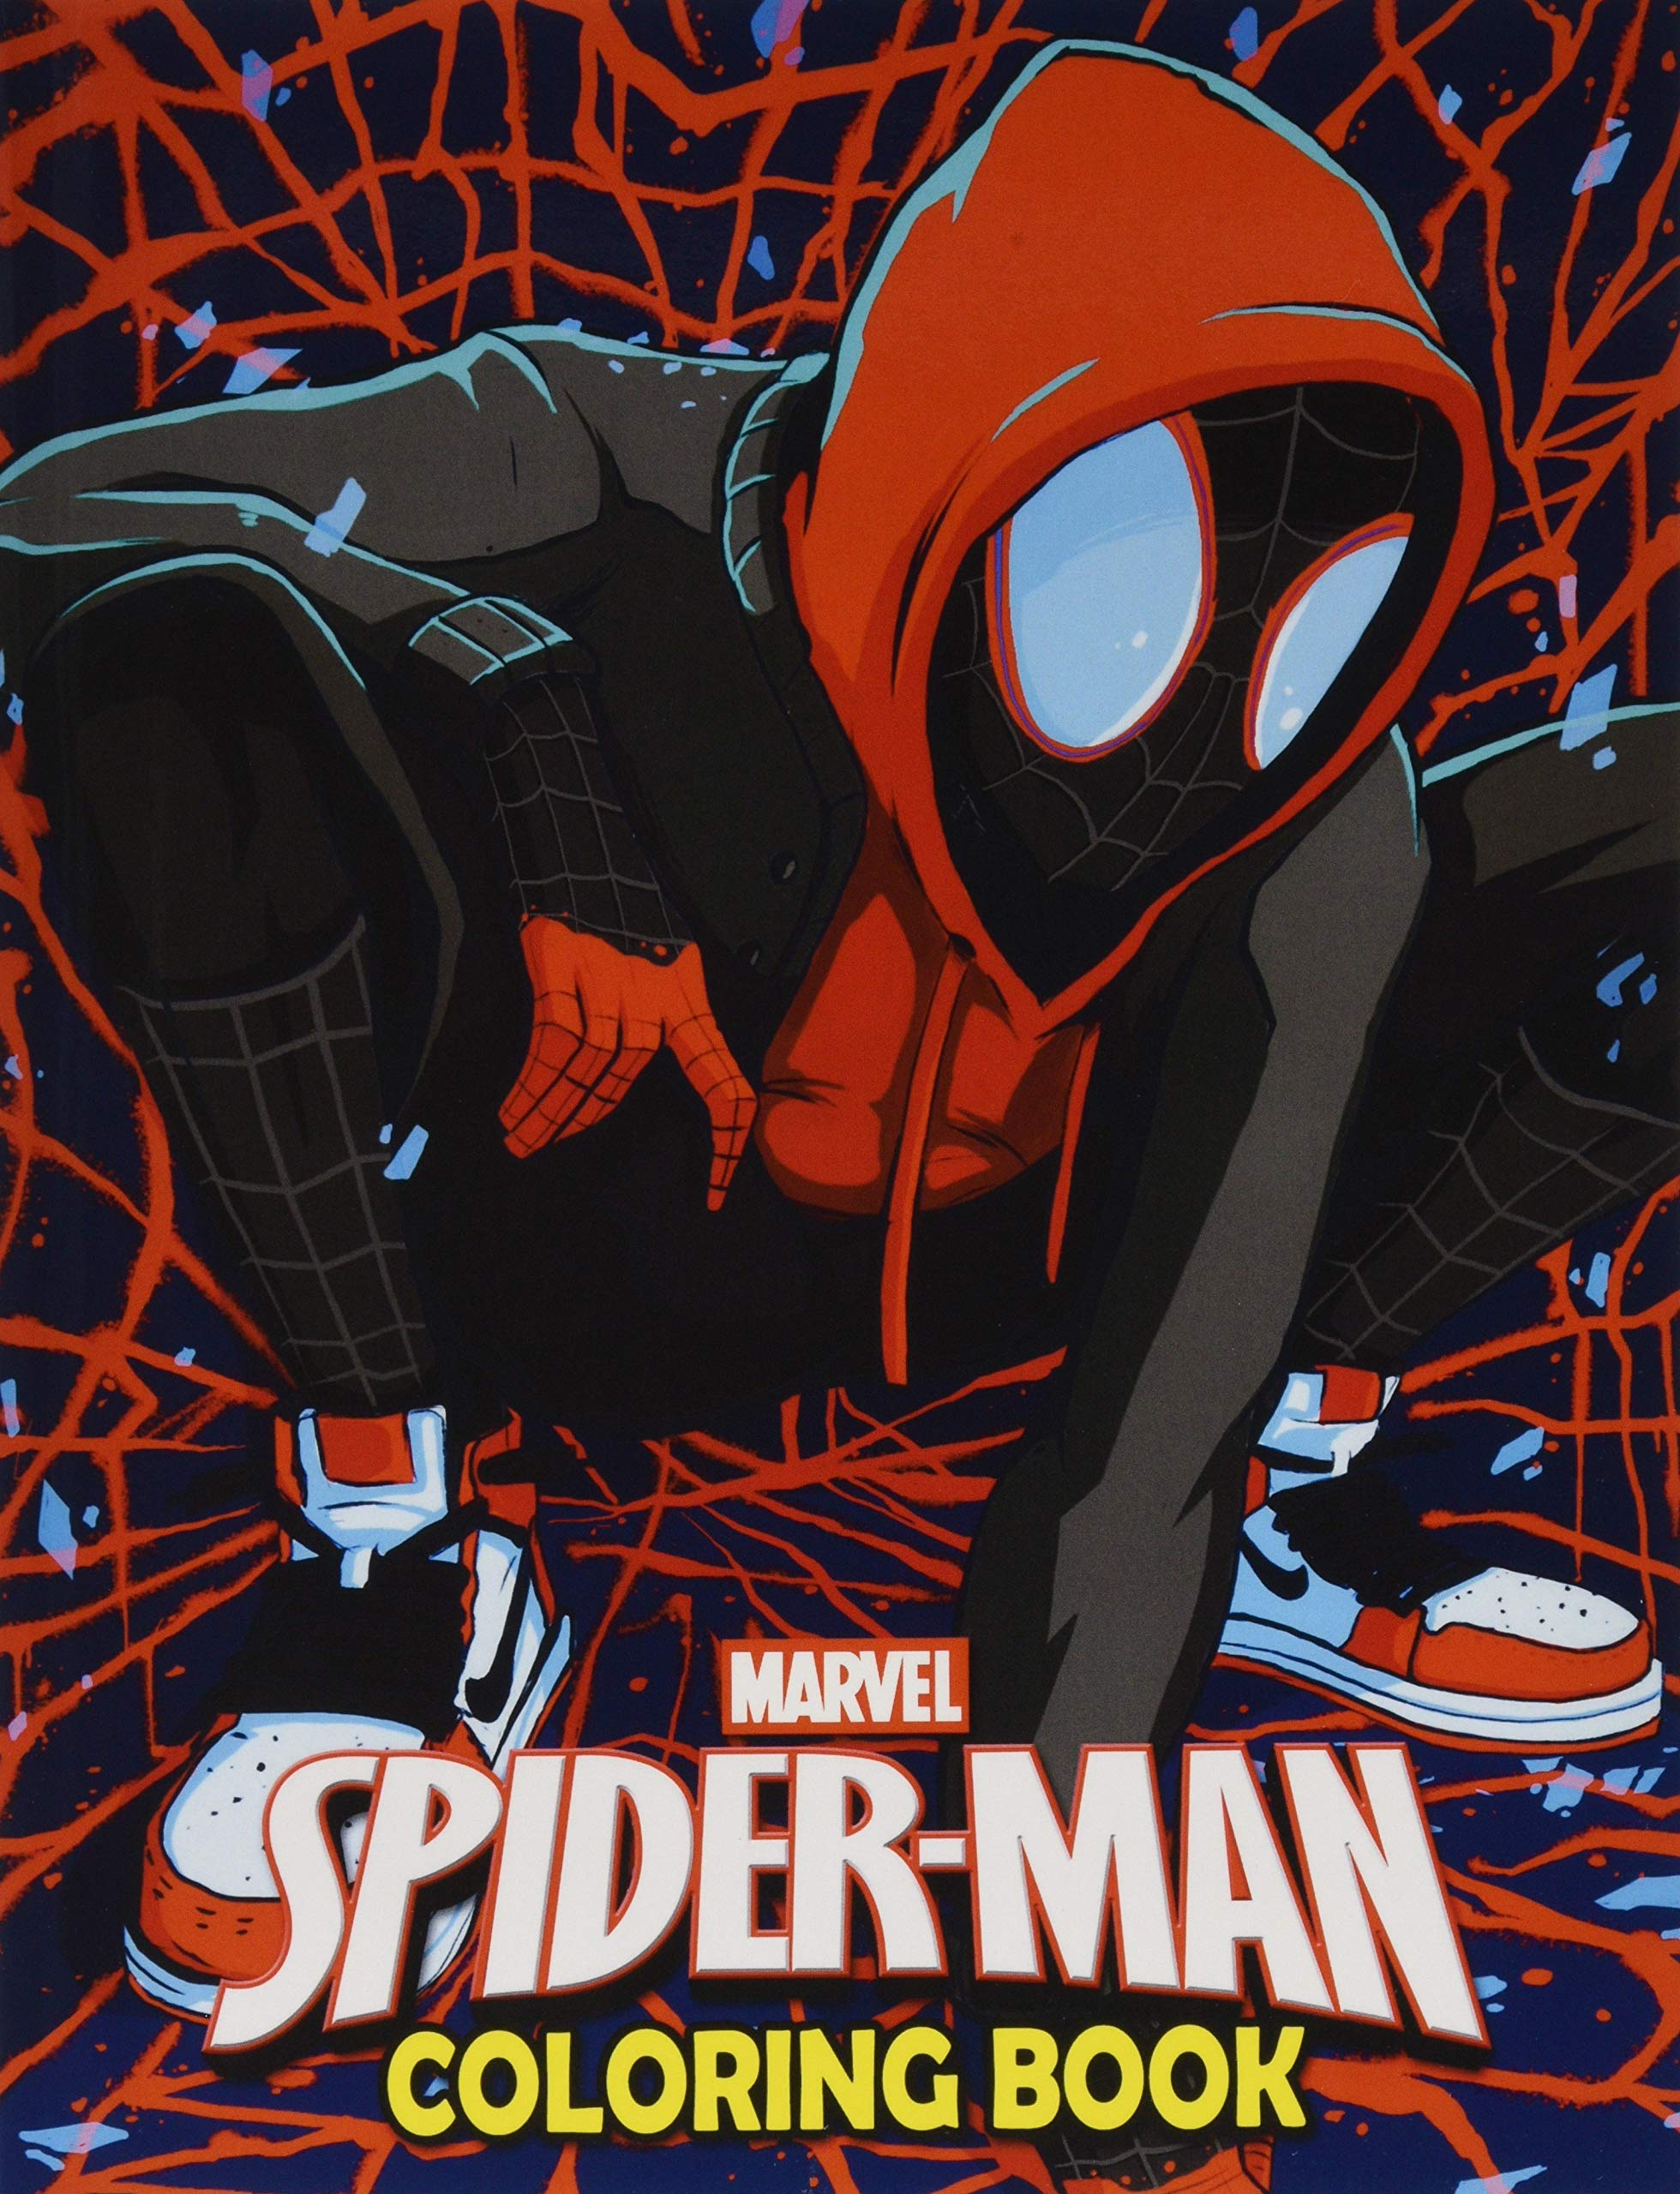 marvel spiderman coloring book spider man illustrations for boys girls great books kids coloring pages Miles Morales Coloring Page